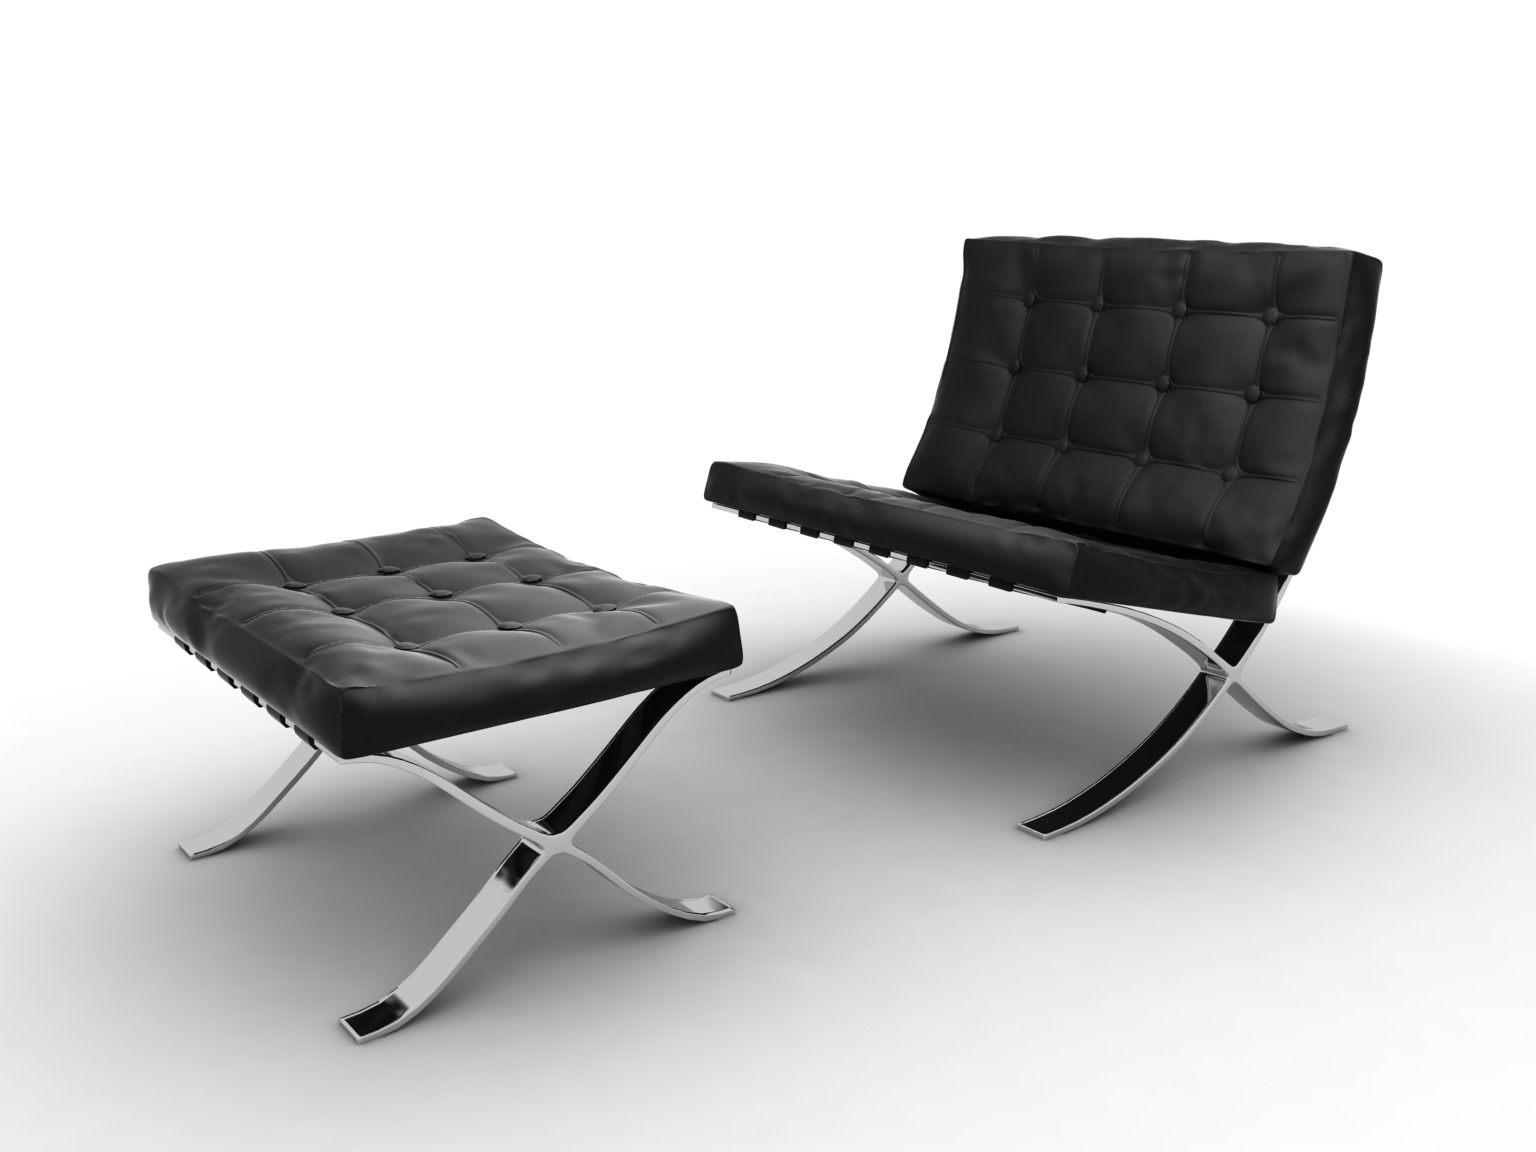 Iconic Chairs: The Top 10 Chairs Designed By Architects iconic chairs Iconic Chairs: The Top 10 Chairs Designed By Architects Barcelona Chair Mis Van Der Rohe